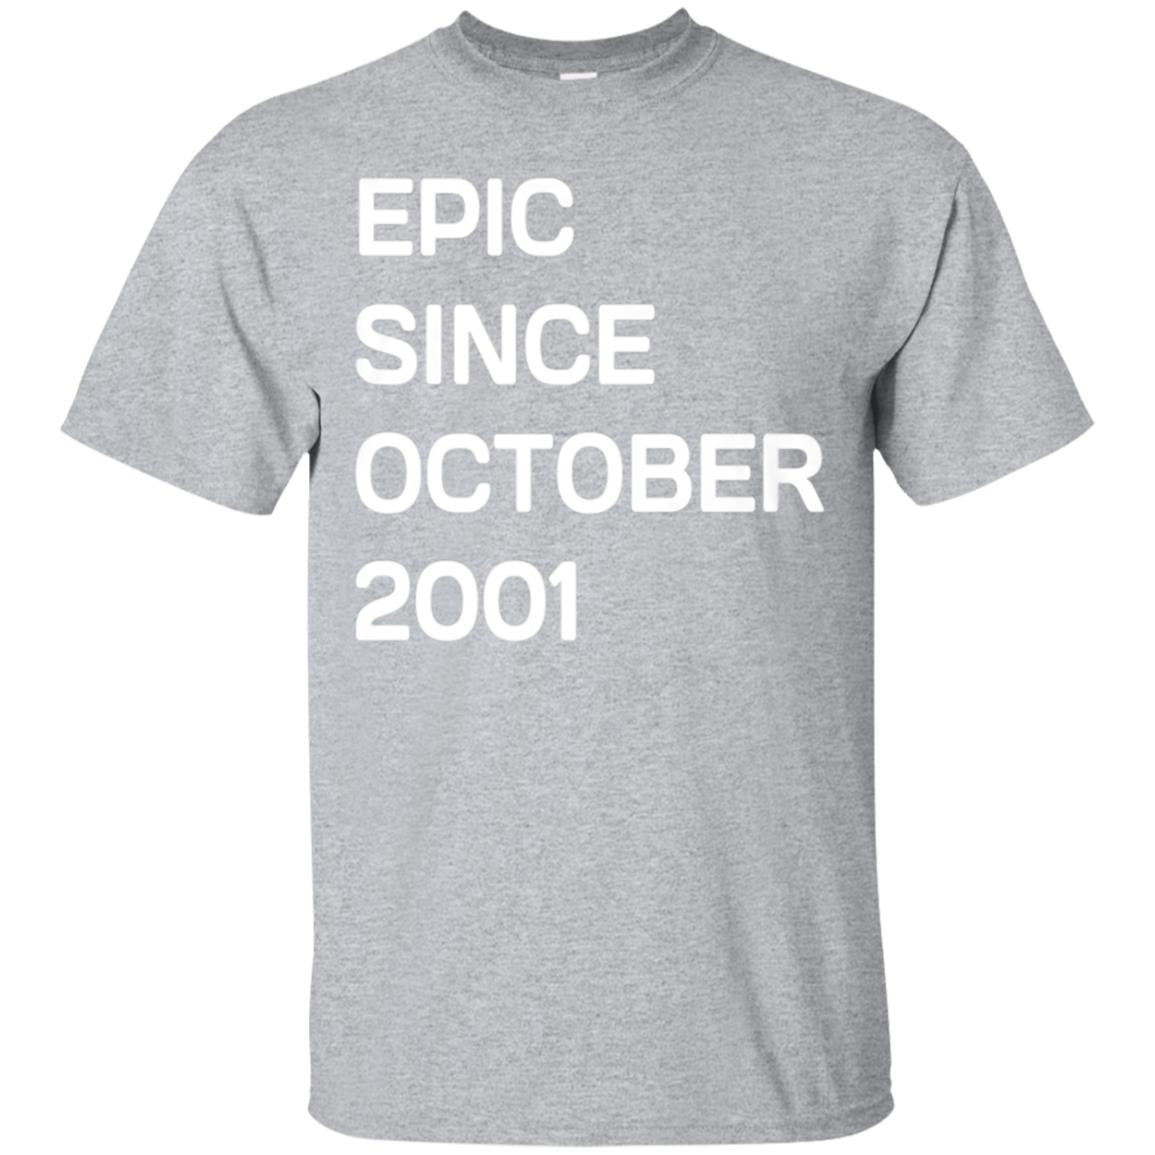 Born In October 2001 Birthday Gift T-Shirt 17 Year Old Tee 99promocode